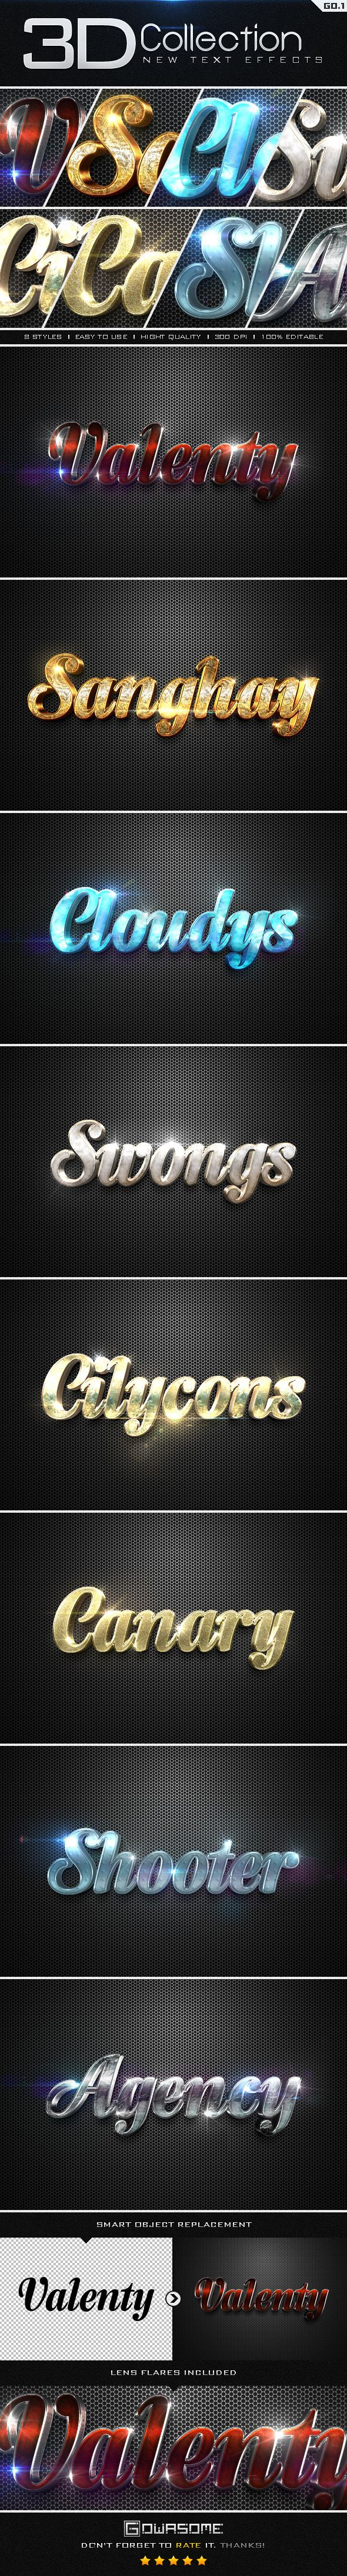 New 3D Collection Text Effects. Download here: http://graphicriver.net/item/new-3d-collection-text-effects-go1/9561348?ref=ksioks